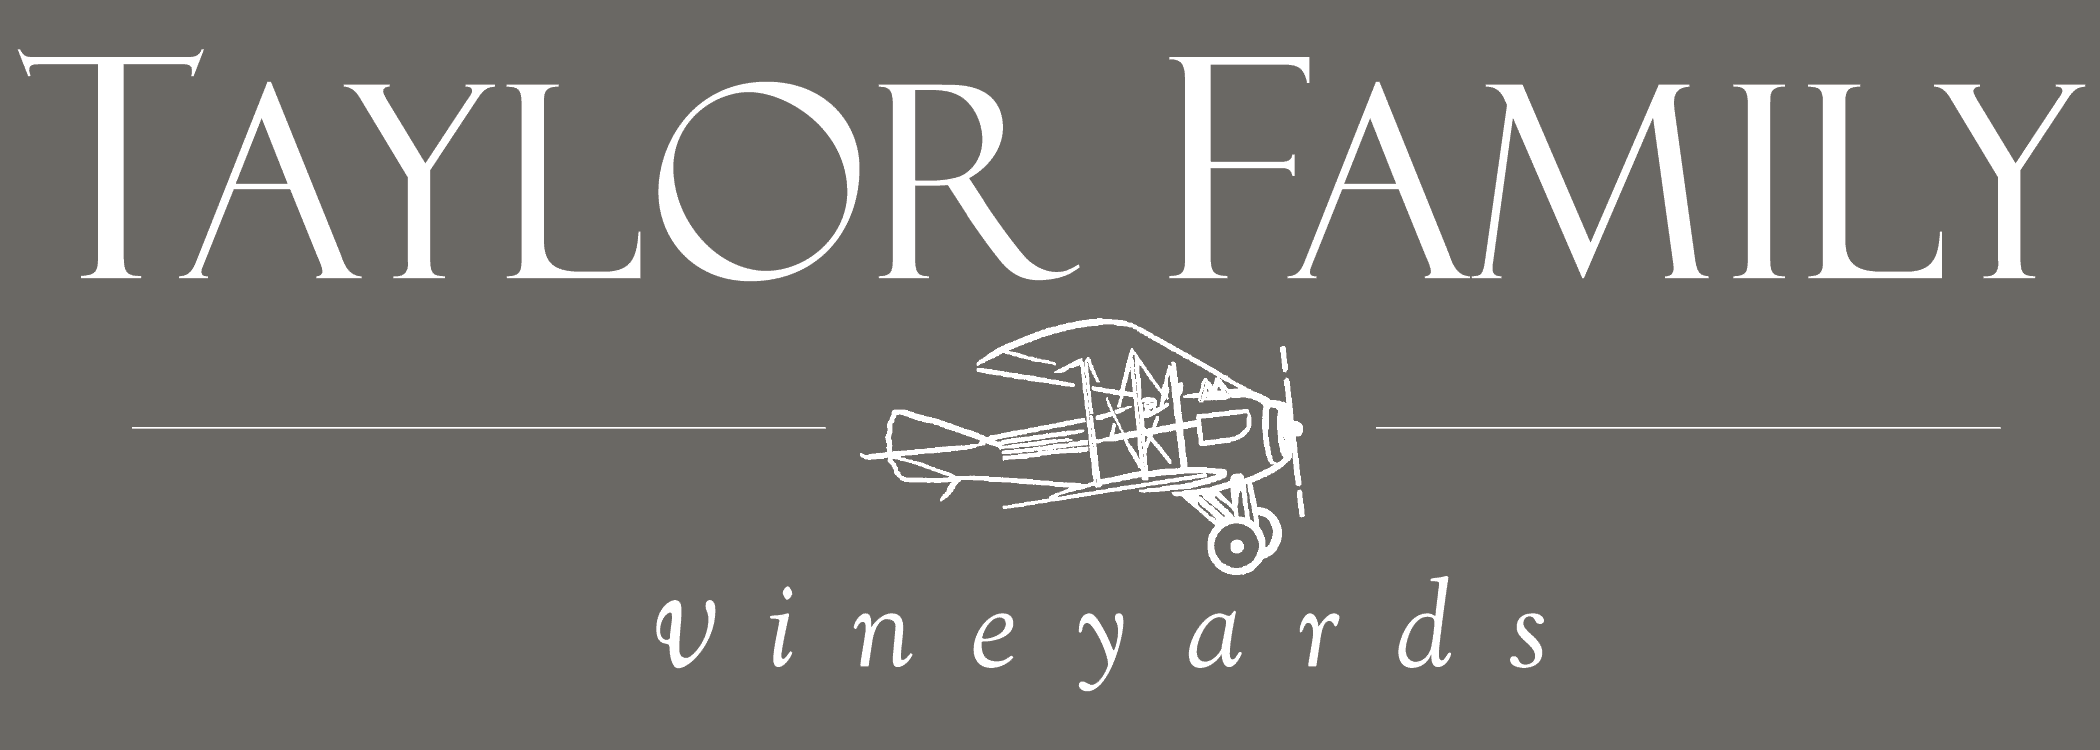 Taylor Family Vineyards | Napa Valley, California Retina Logo